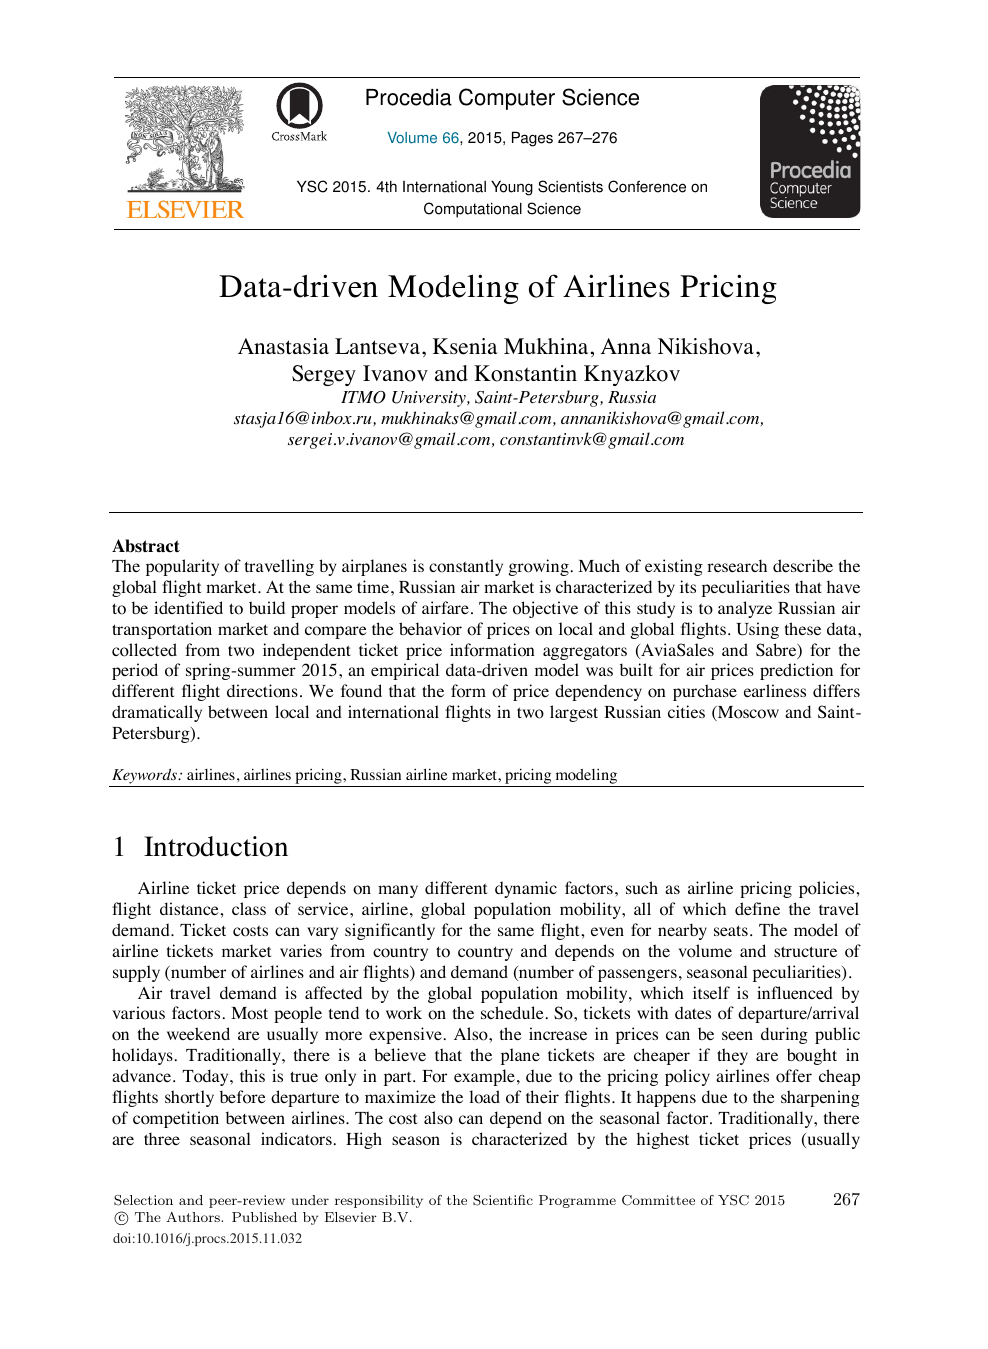 Data-driven Modeling of Airlines Pricing – topic of research paper